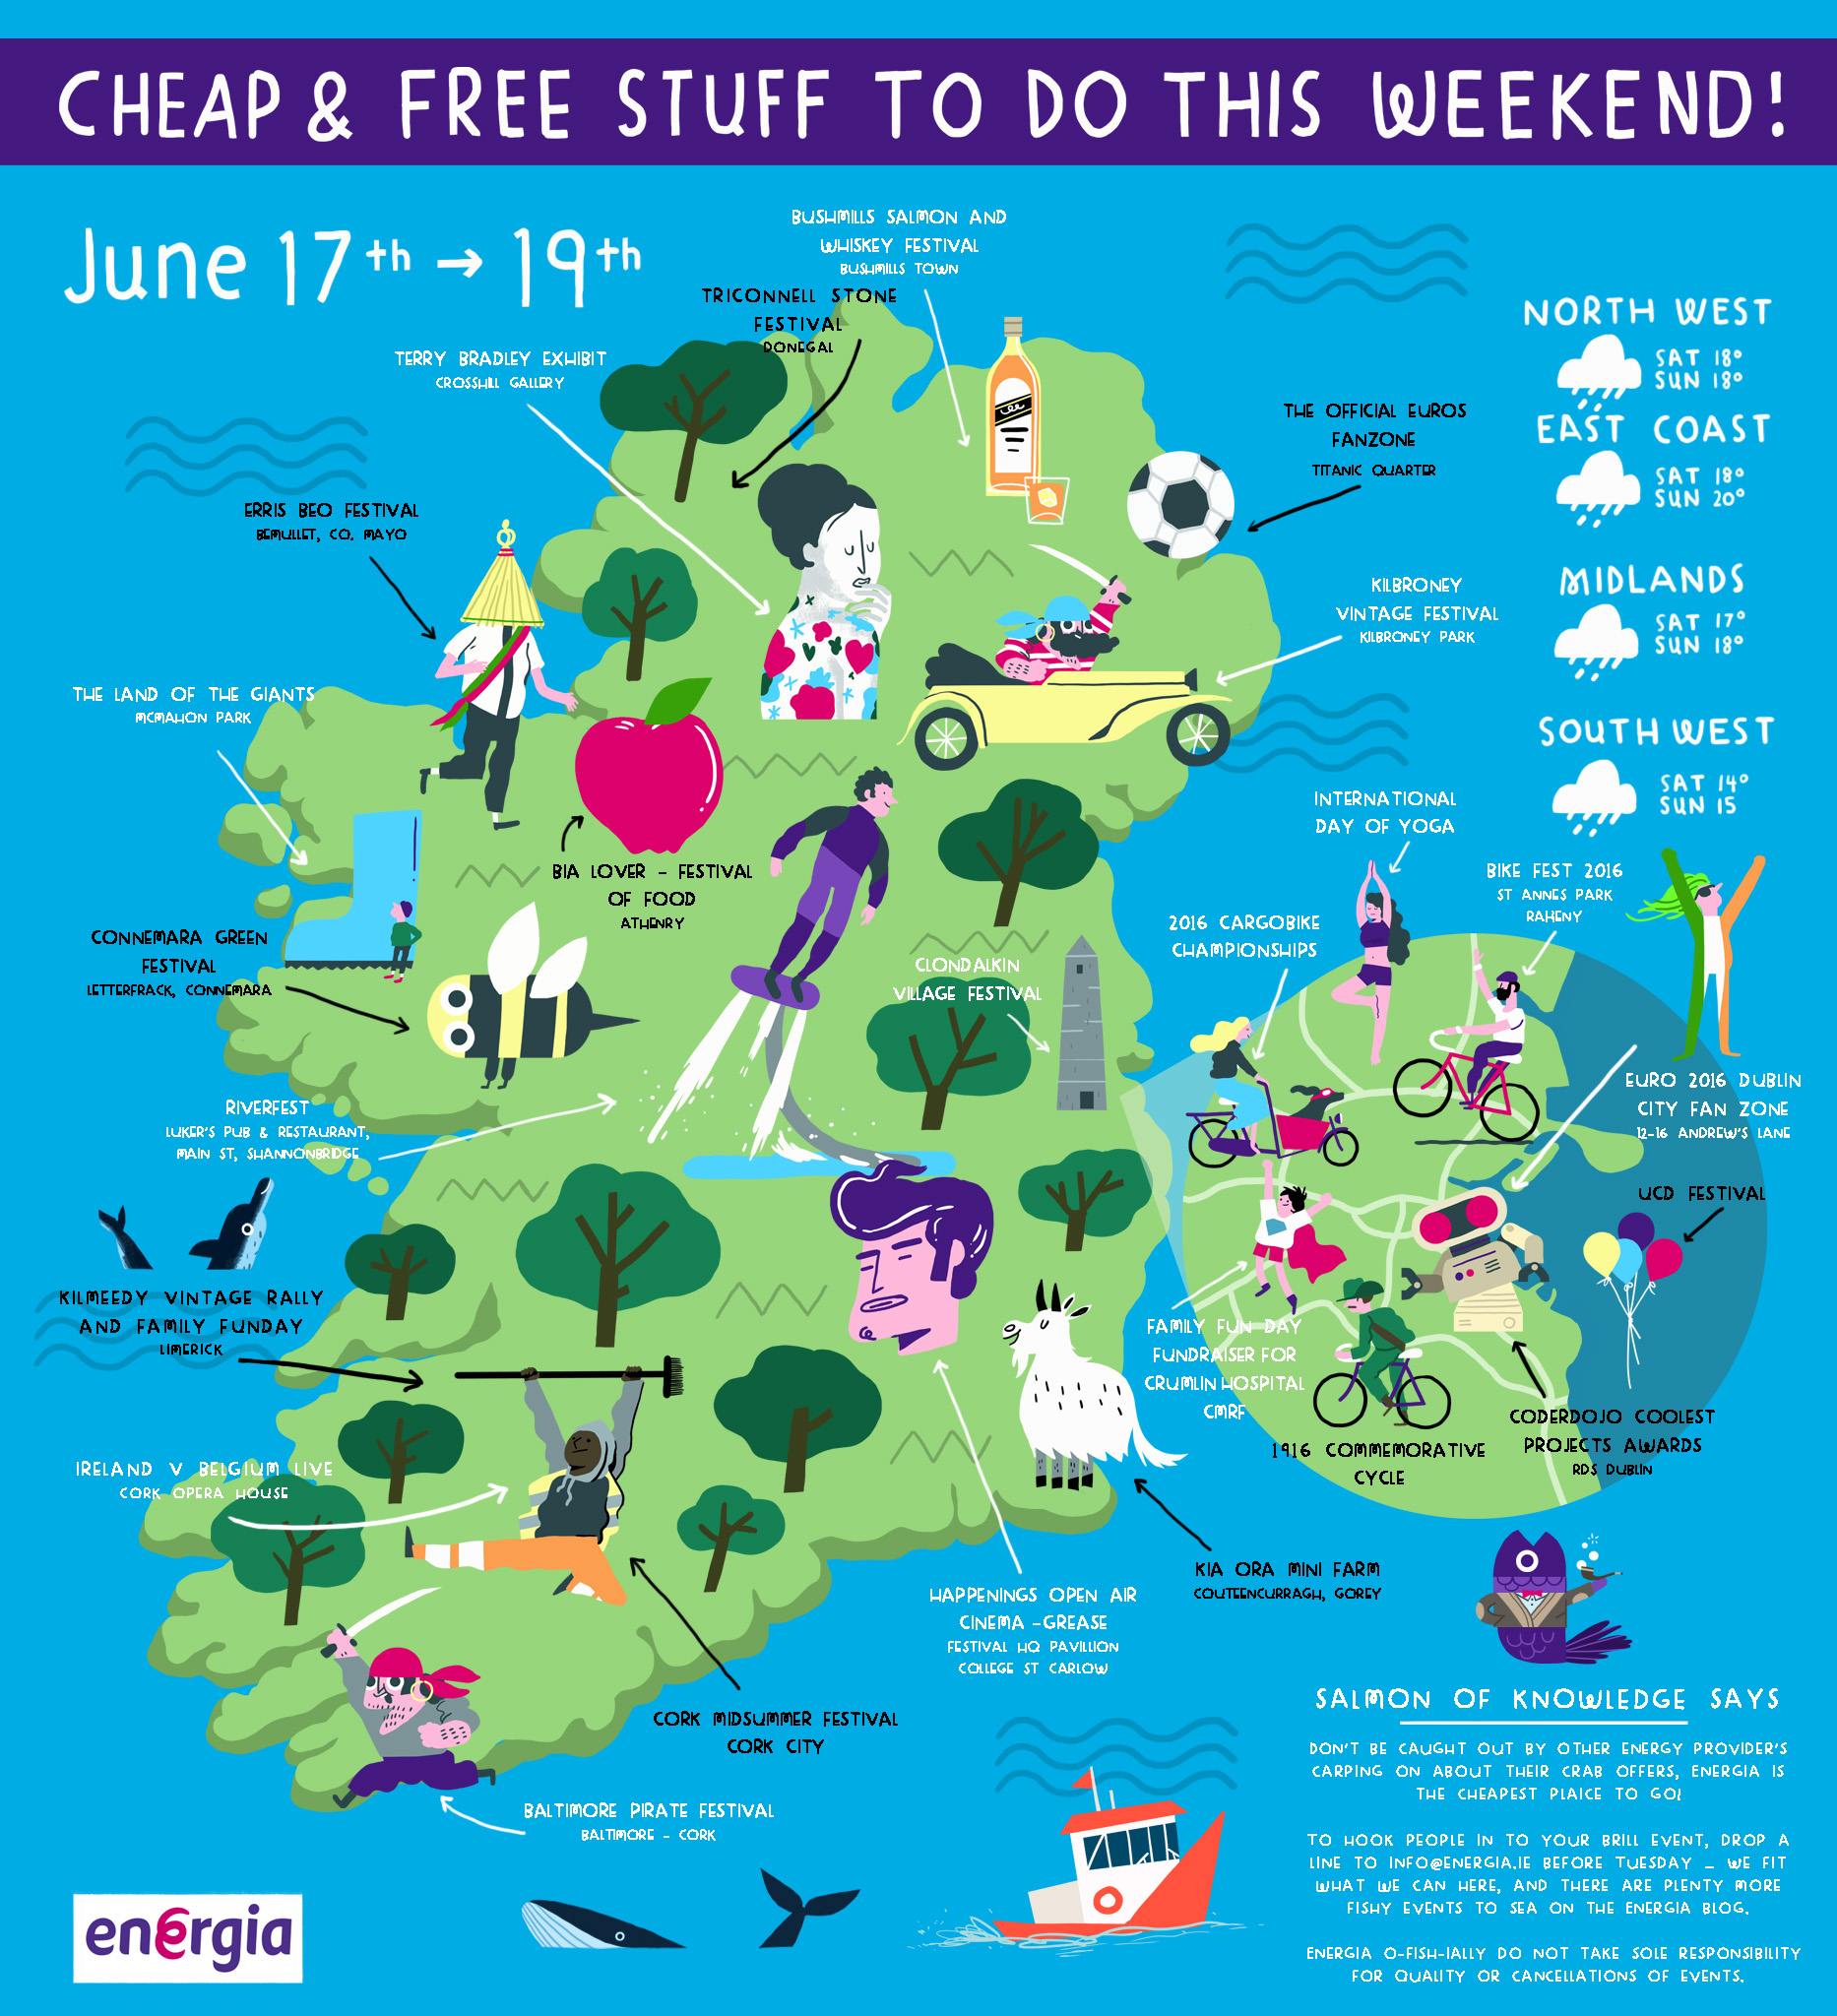 Cheap & Free stuff to do this weekend 17th - 19th June